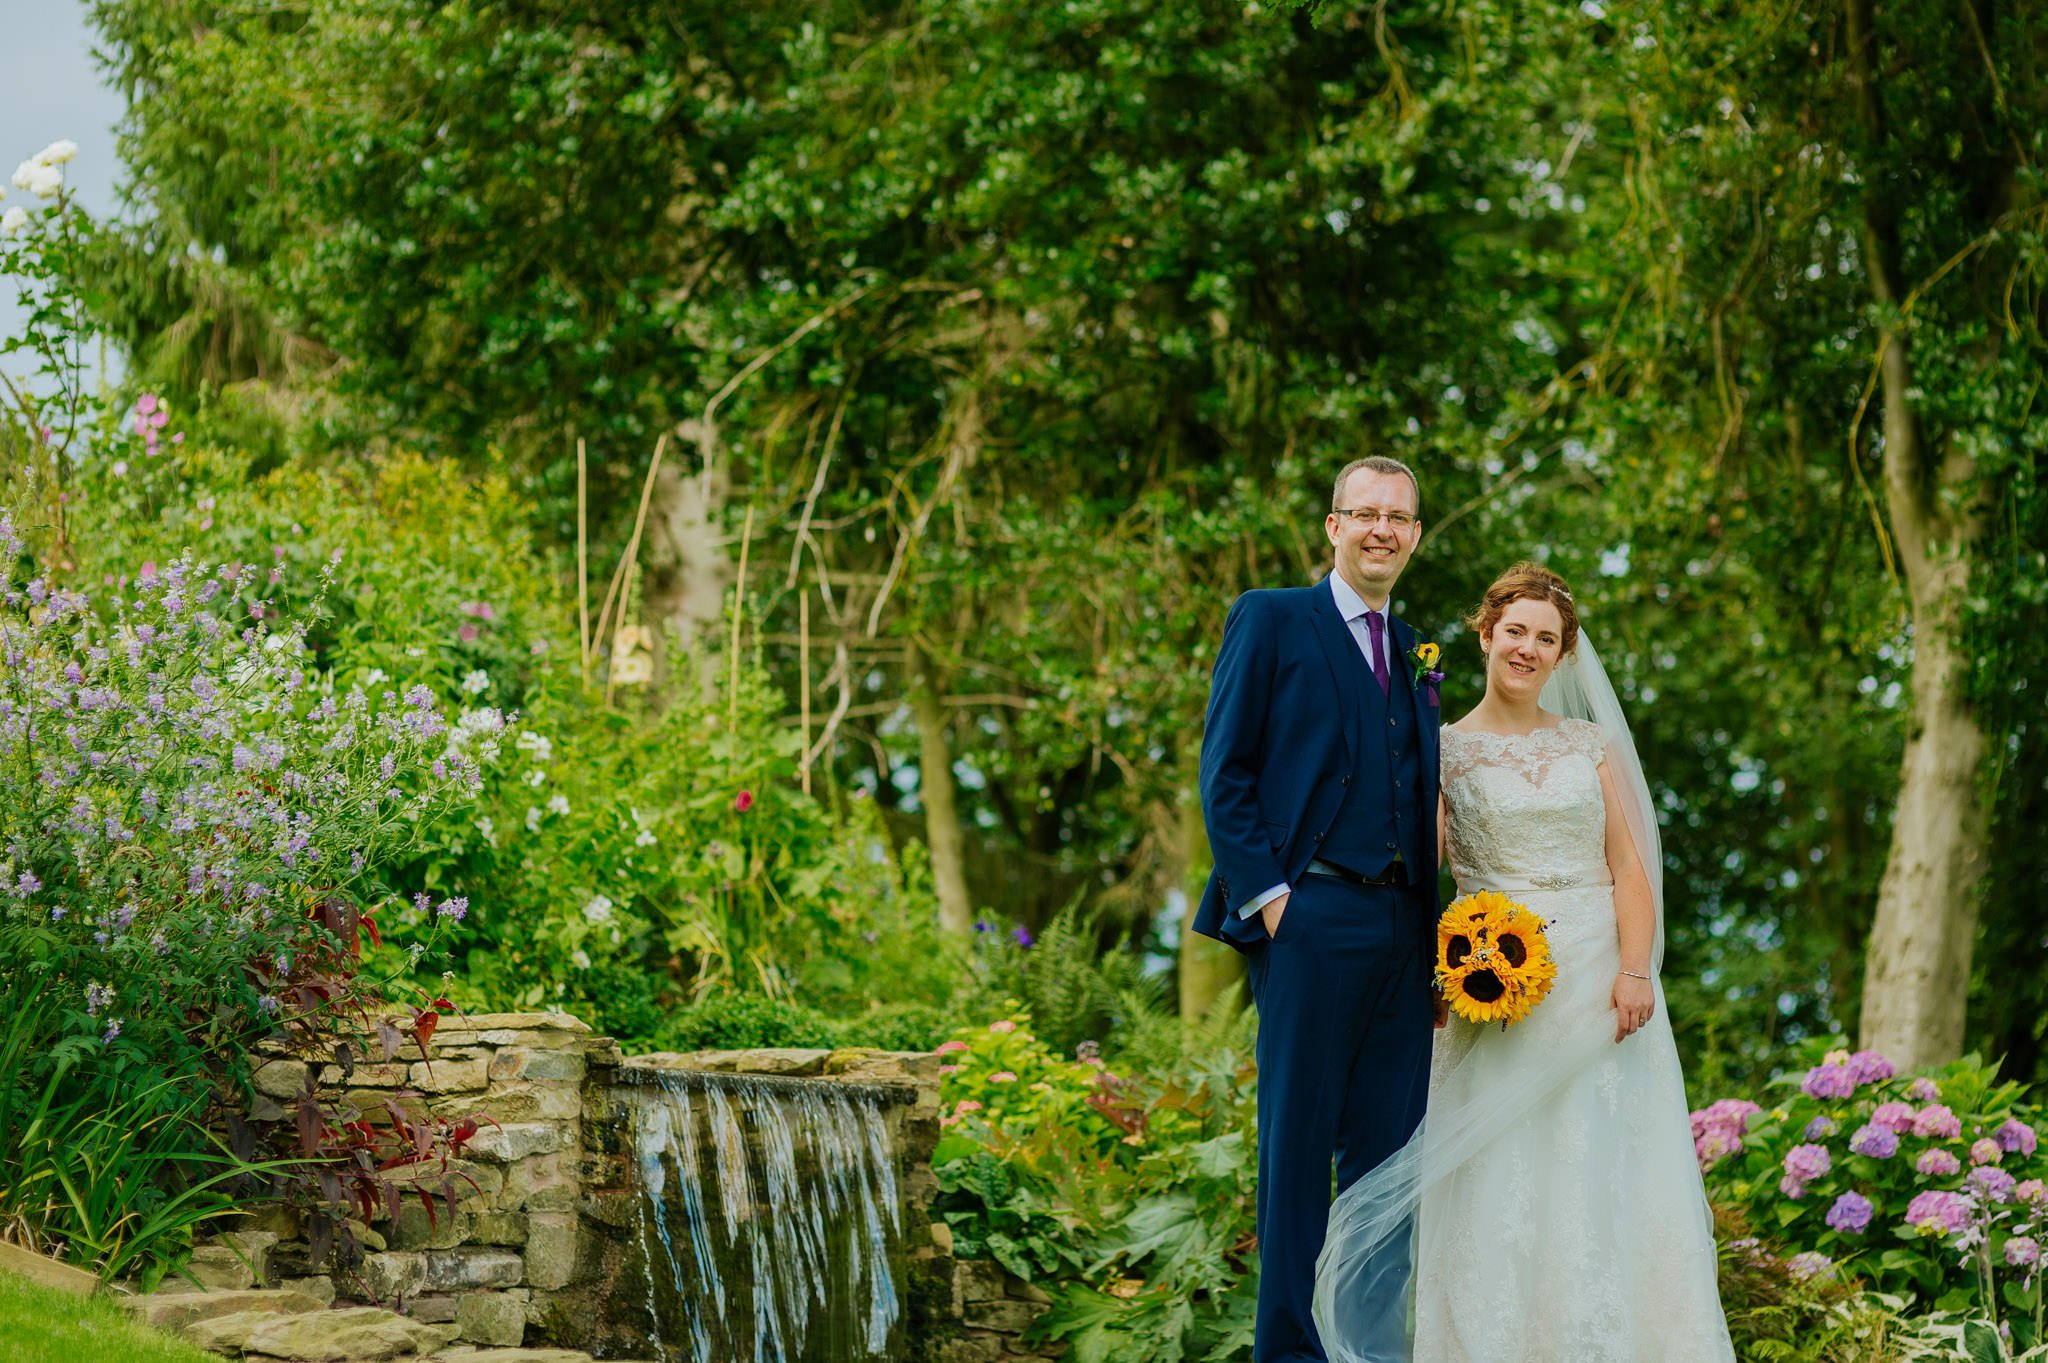 Wedding photography at Homme House in Herefordshire, West Midlands 62